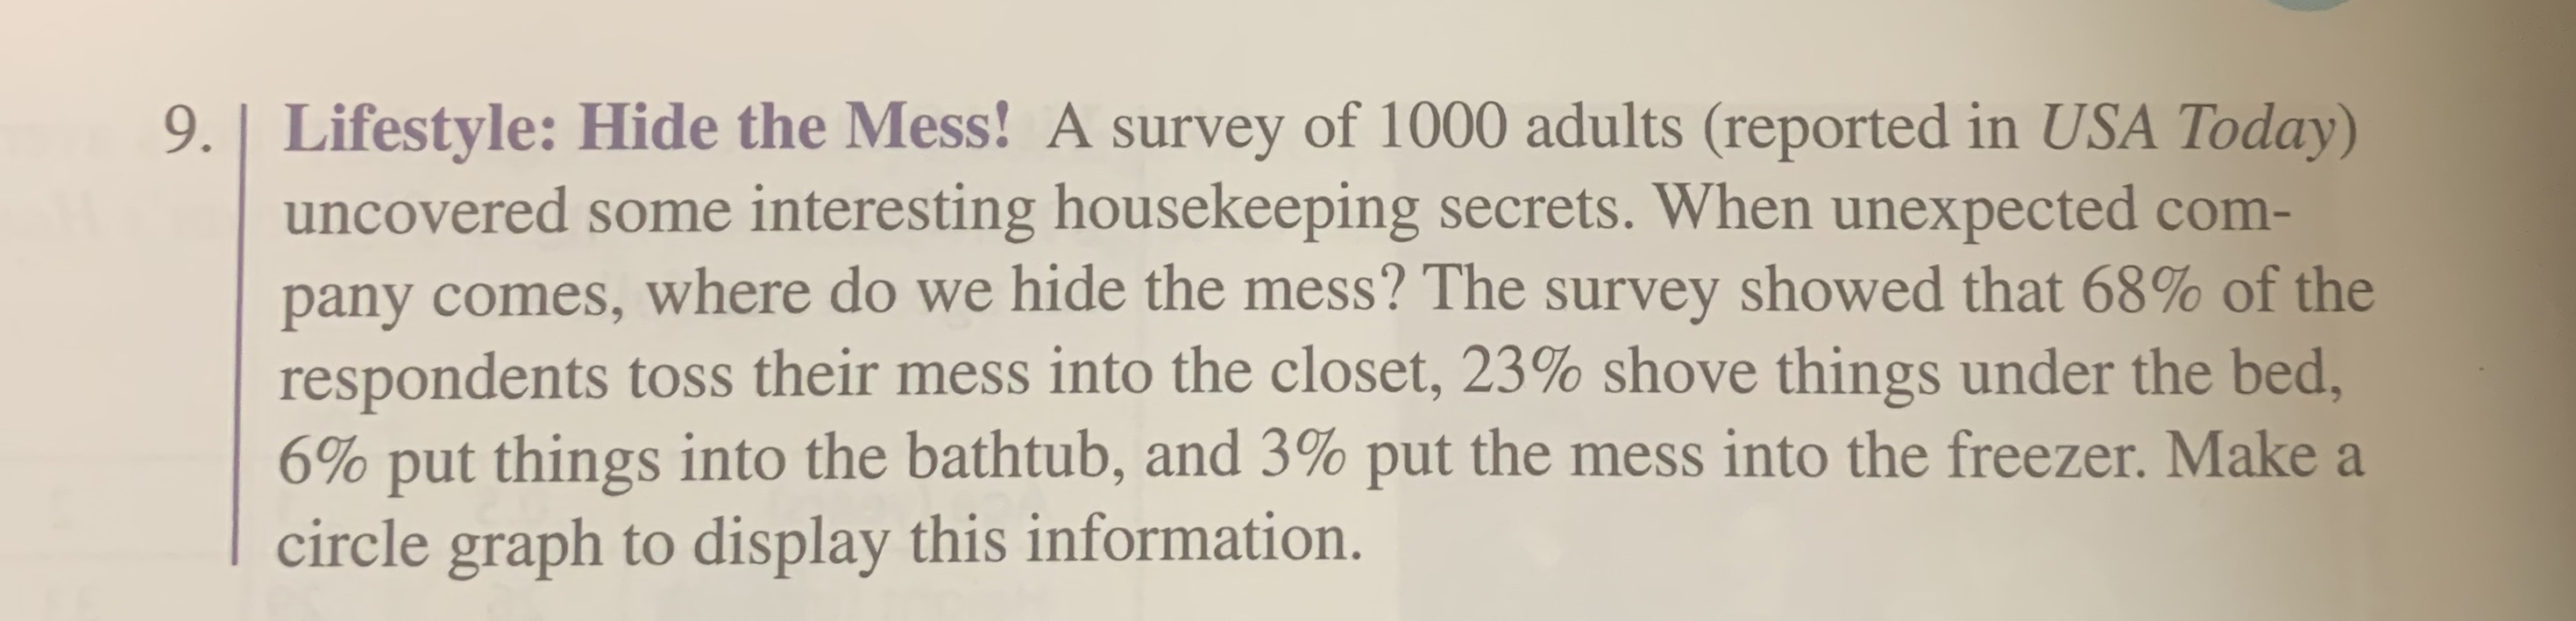 Lifestyle: Hide the Mess! A survey of 1000 adults (reported in USA Today) uncovered some interesting housekeeping secrets. When unexpected com- pany comes, where do we hide the mess? The survey showed that 68% of the respondents toss their mess into the closet, 23% shove things under the bed, 6% put things into the bathtub, and 3% put the mess into the freezer. Make a circle graph to display this information. 9.